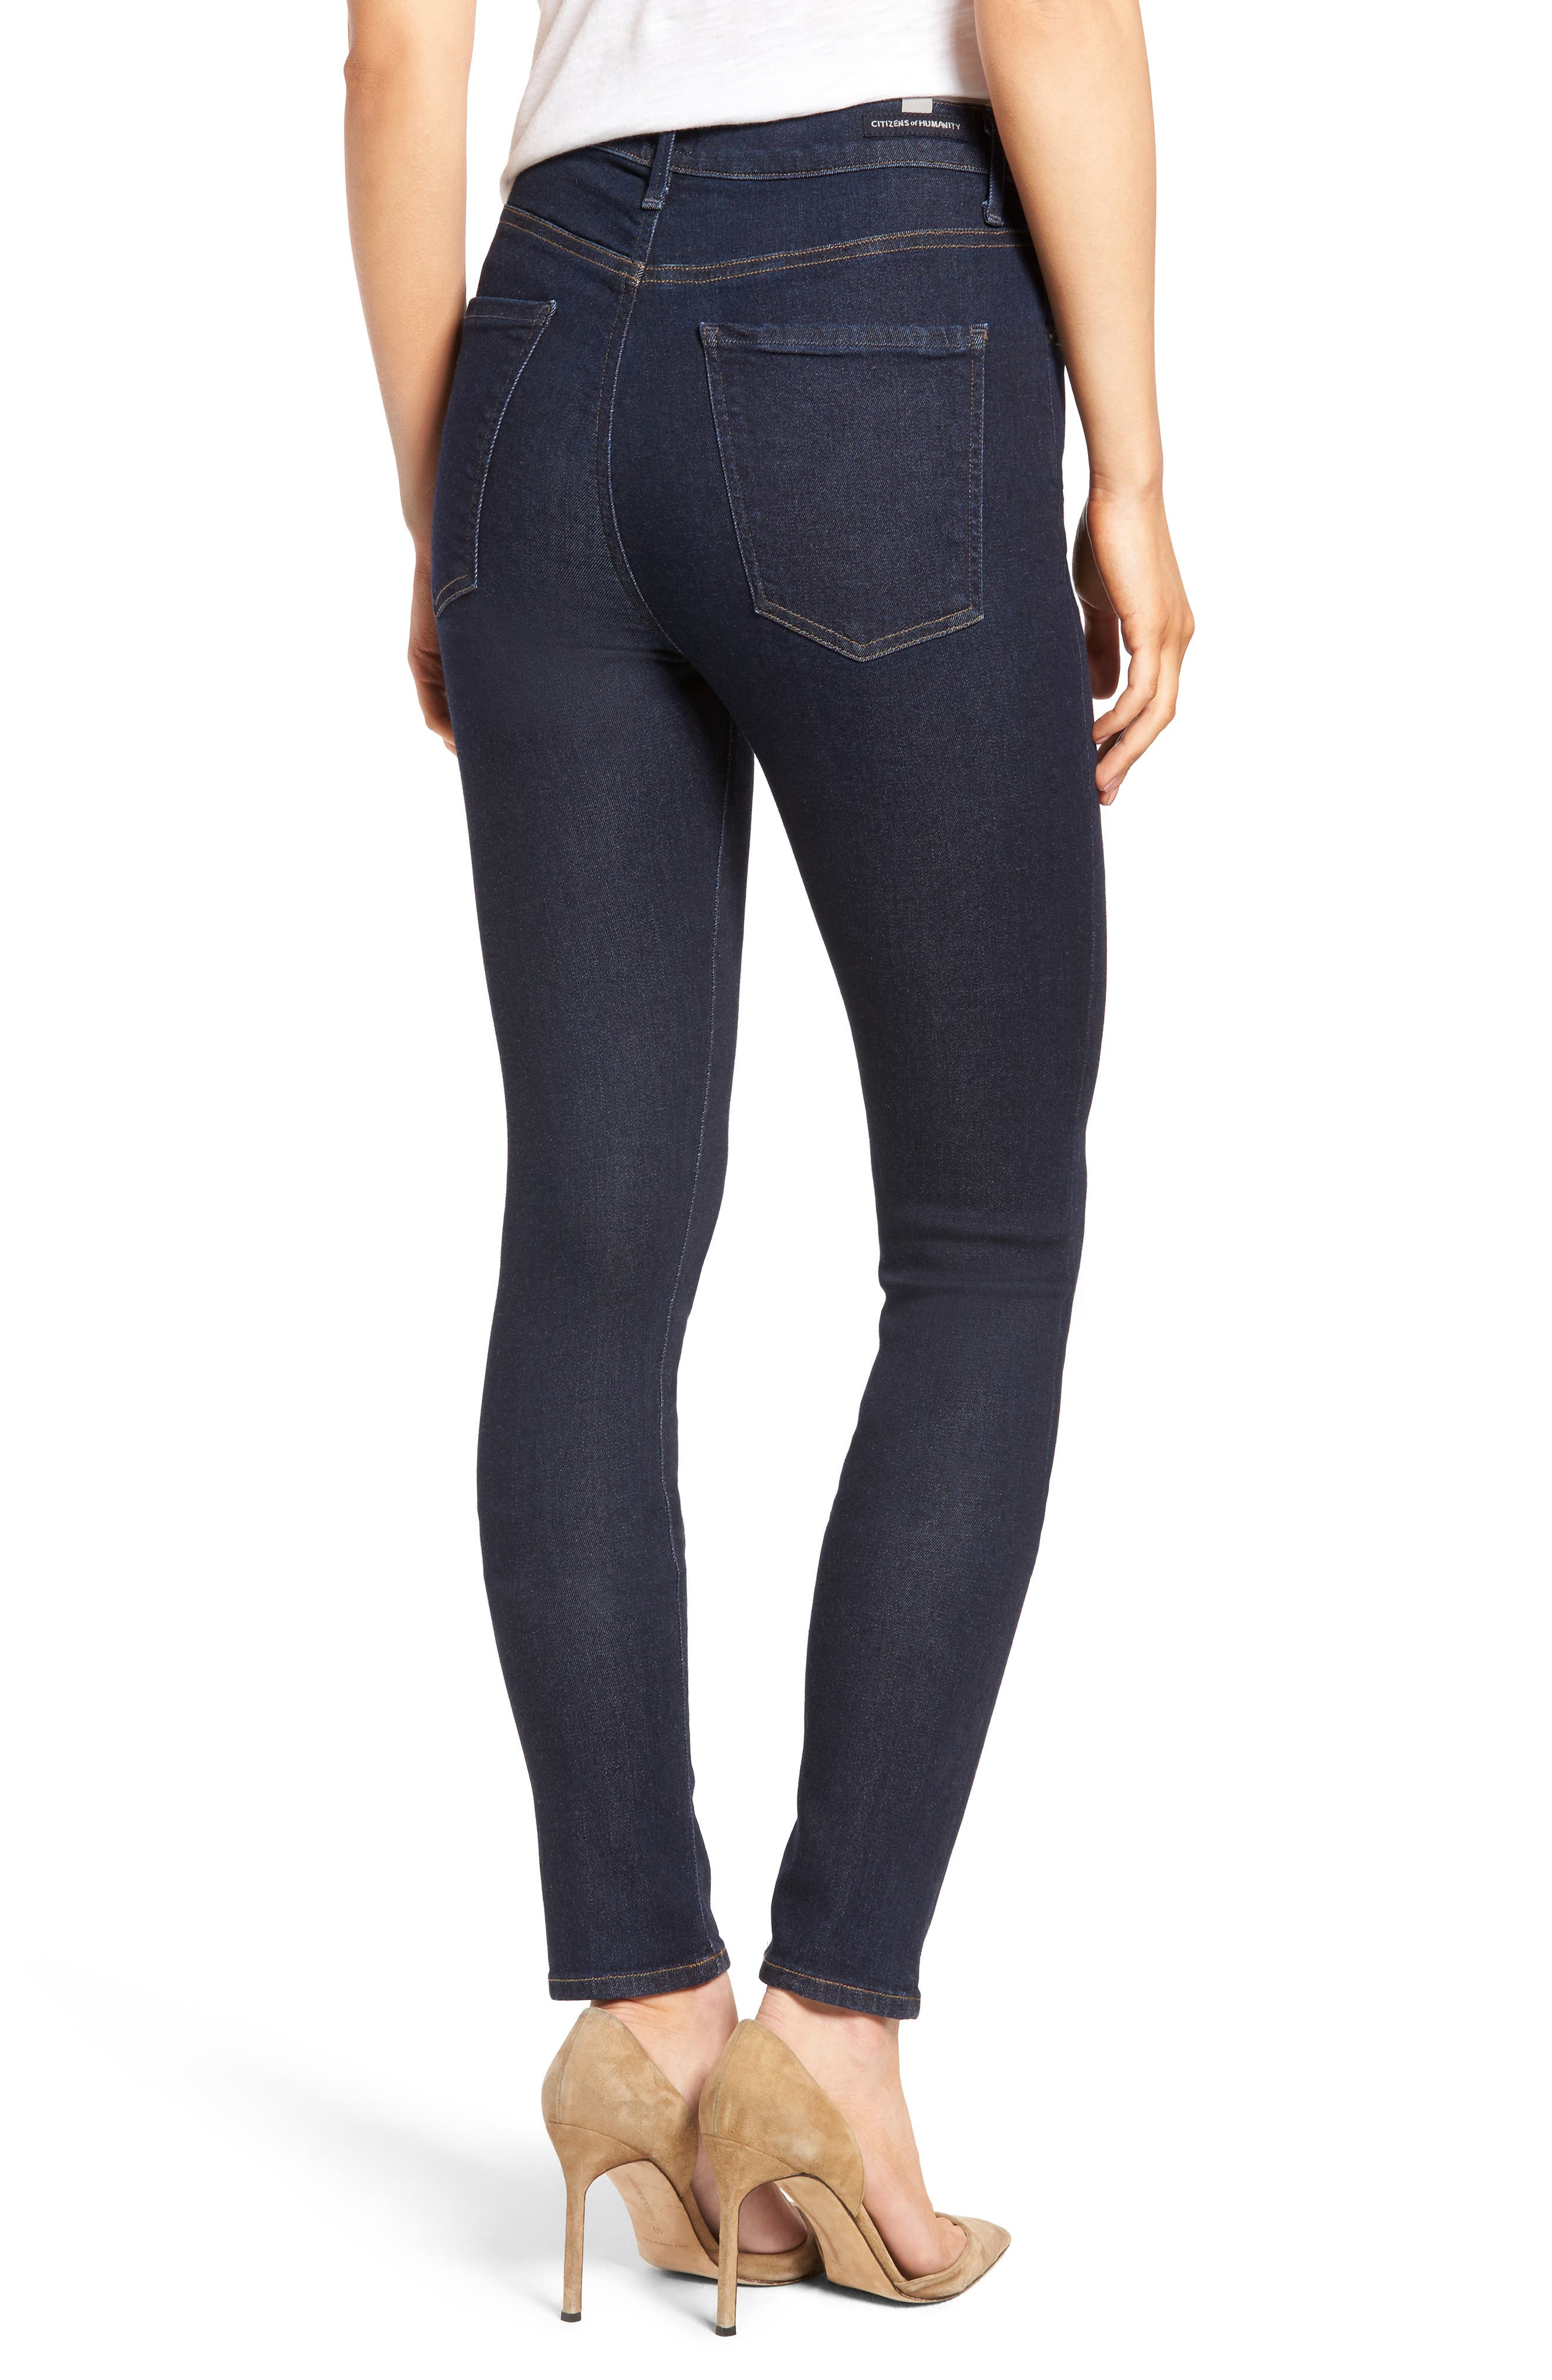 Carlie High Waist Skinny Jeans,                             Alternate thumbnail 2, color,                             OZONE RINSE